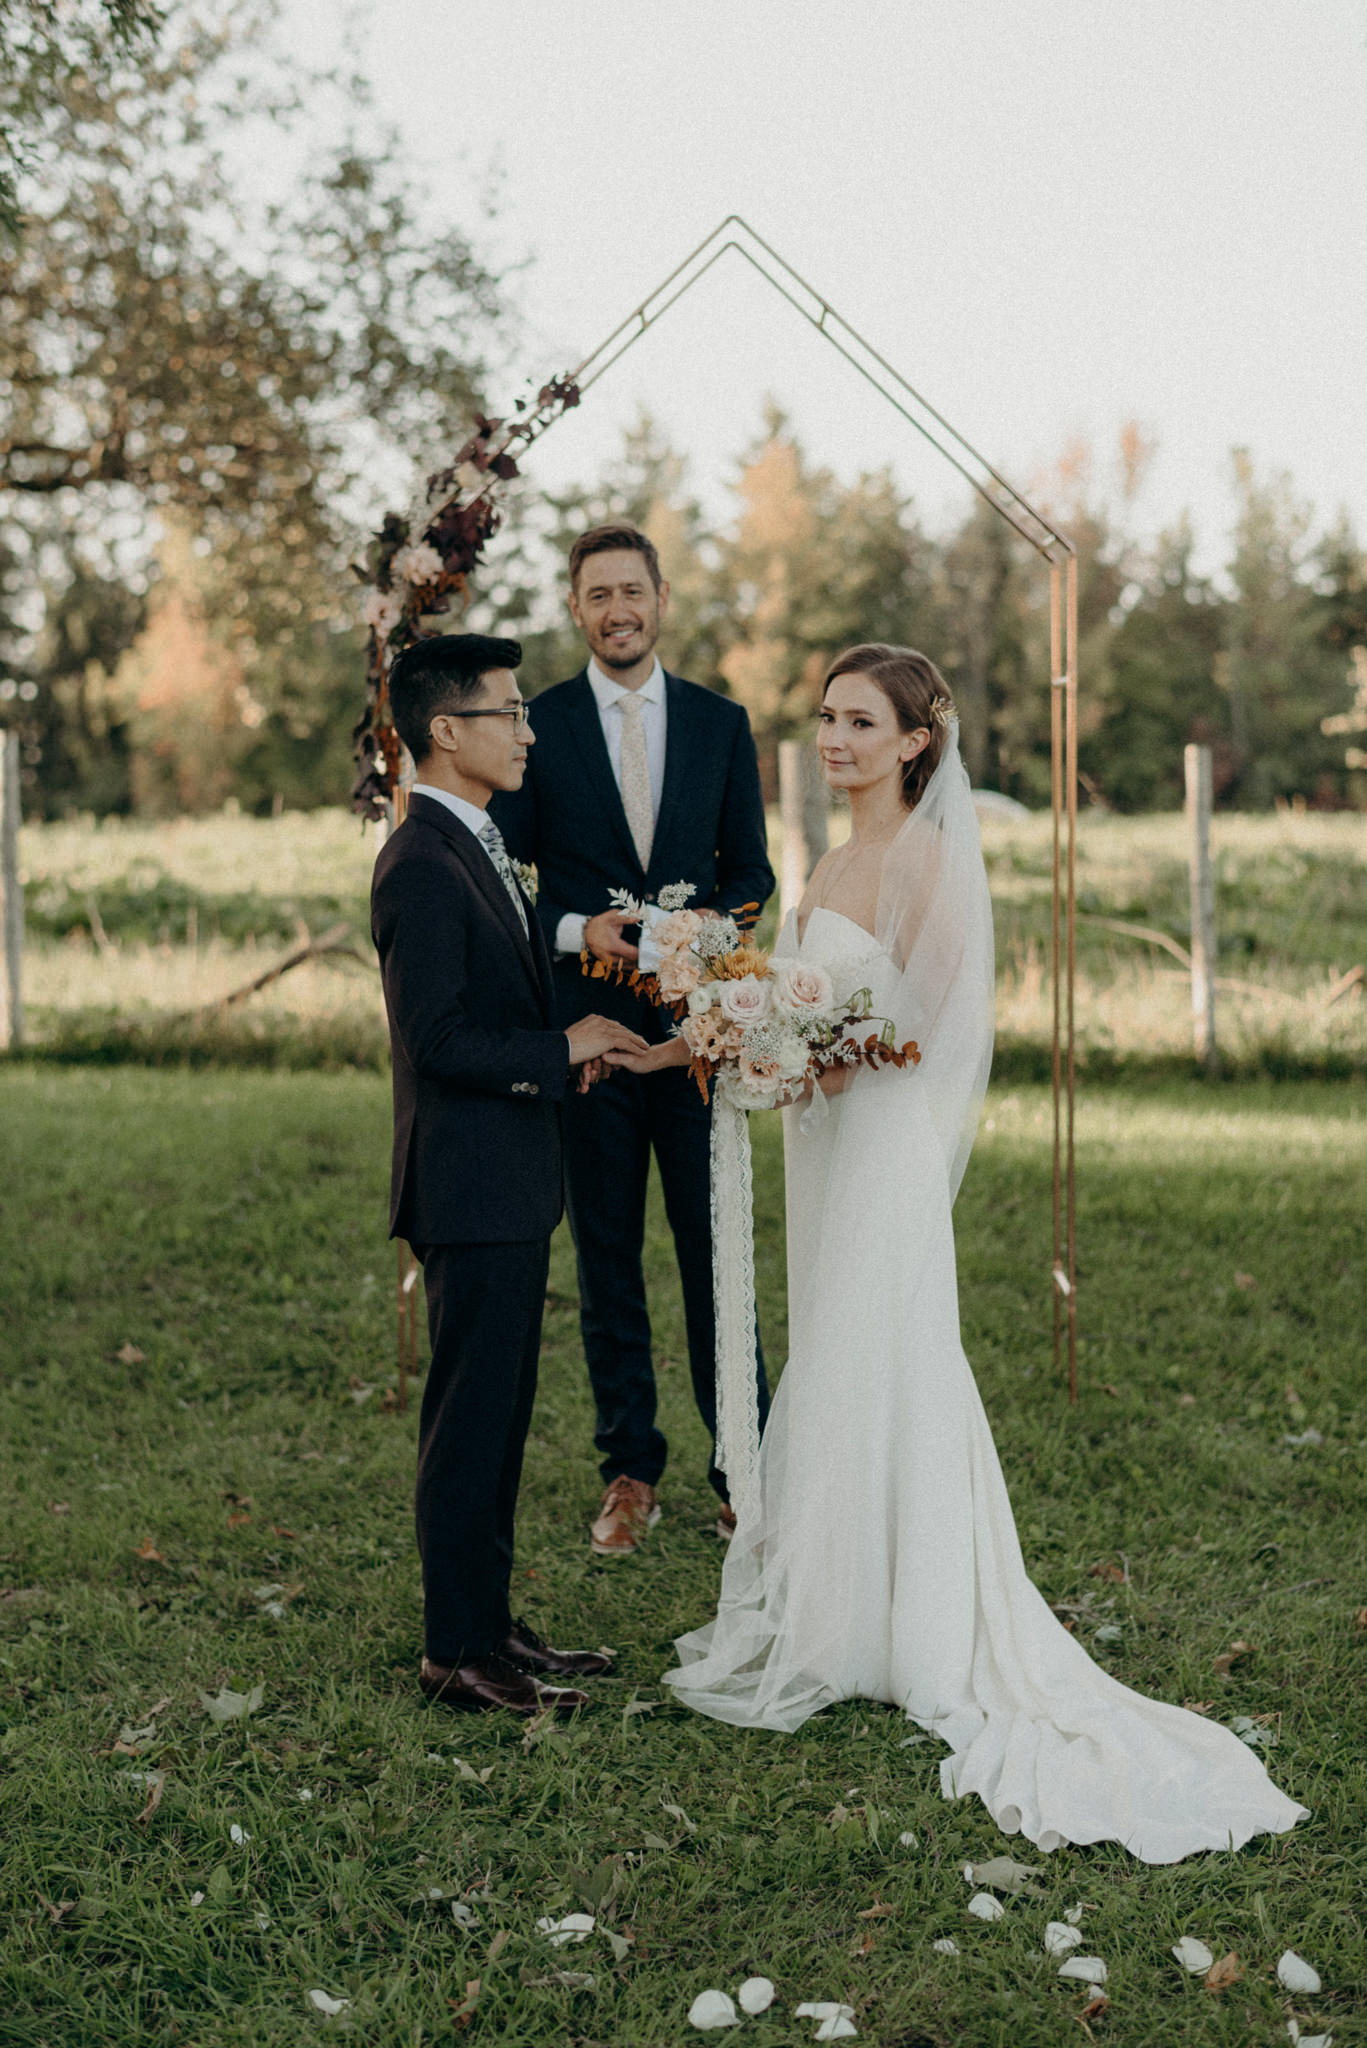 Outdoor wedding ceremony at Good Family Farms